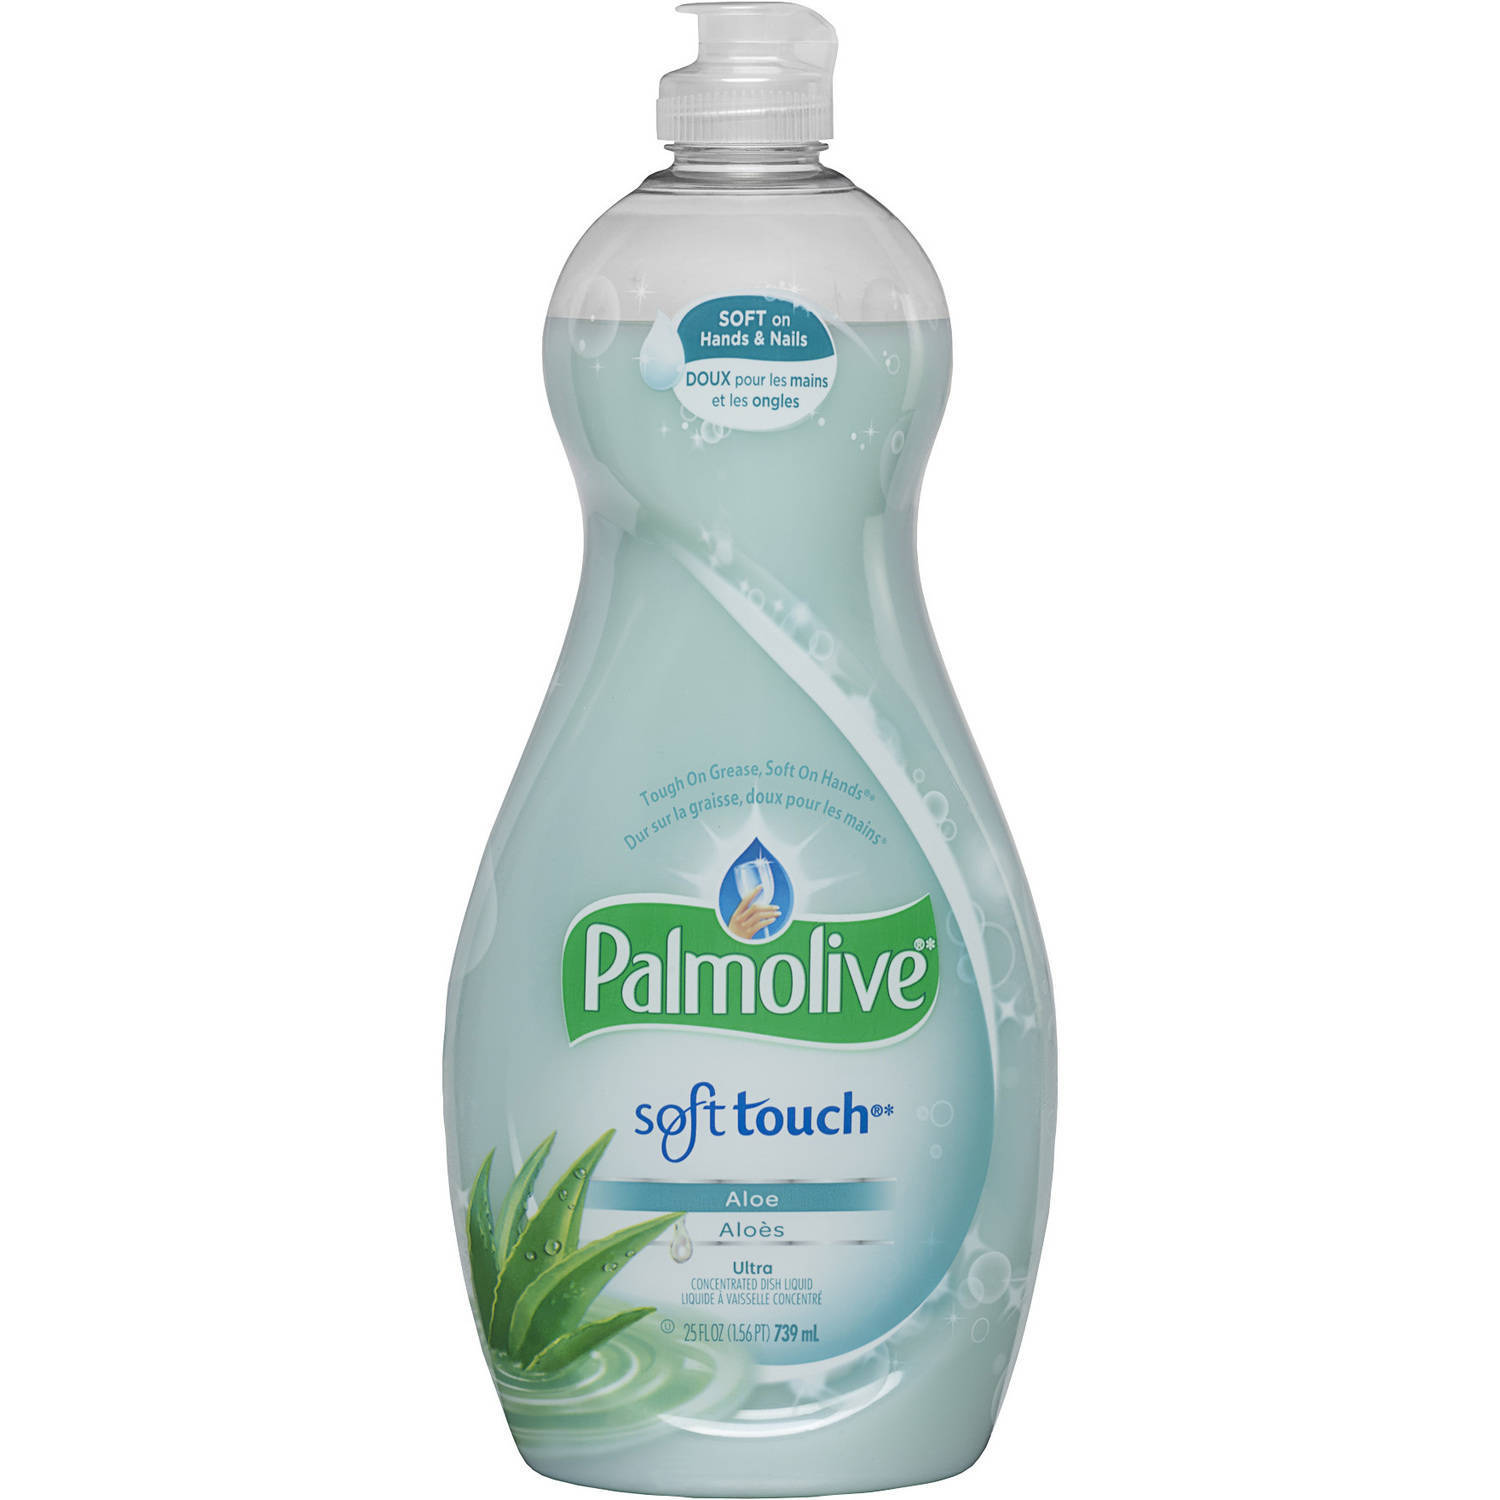 Palmolive Soft Touch Dishwashing Liquid Reviews In Kitchen